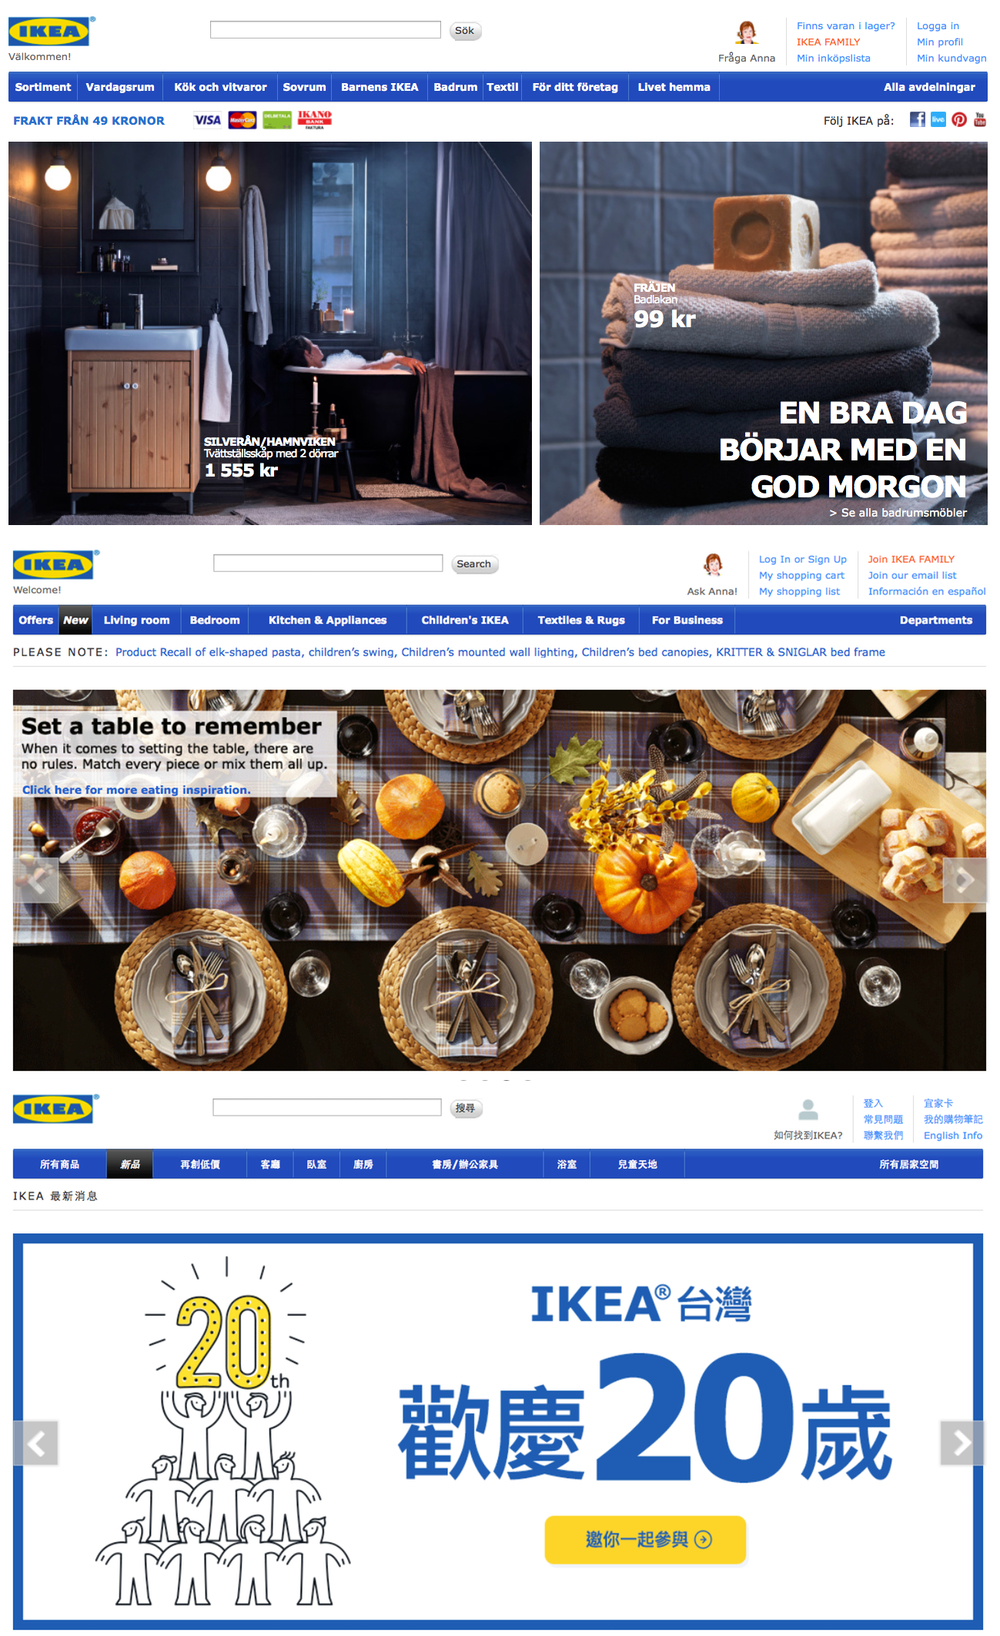 IKEA may be a giant global brand, but its websites are uniquely local, and still consistently on-brand: IKEA's Swedish website (at top) features bath-time comforts, while its U.S. website (center) displays a timely Thanksgiving theme, and the Taiwan website (at bottom) celebrates 20 years of IKEA in Taiwan.